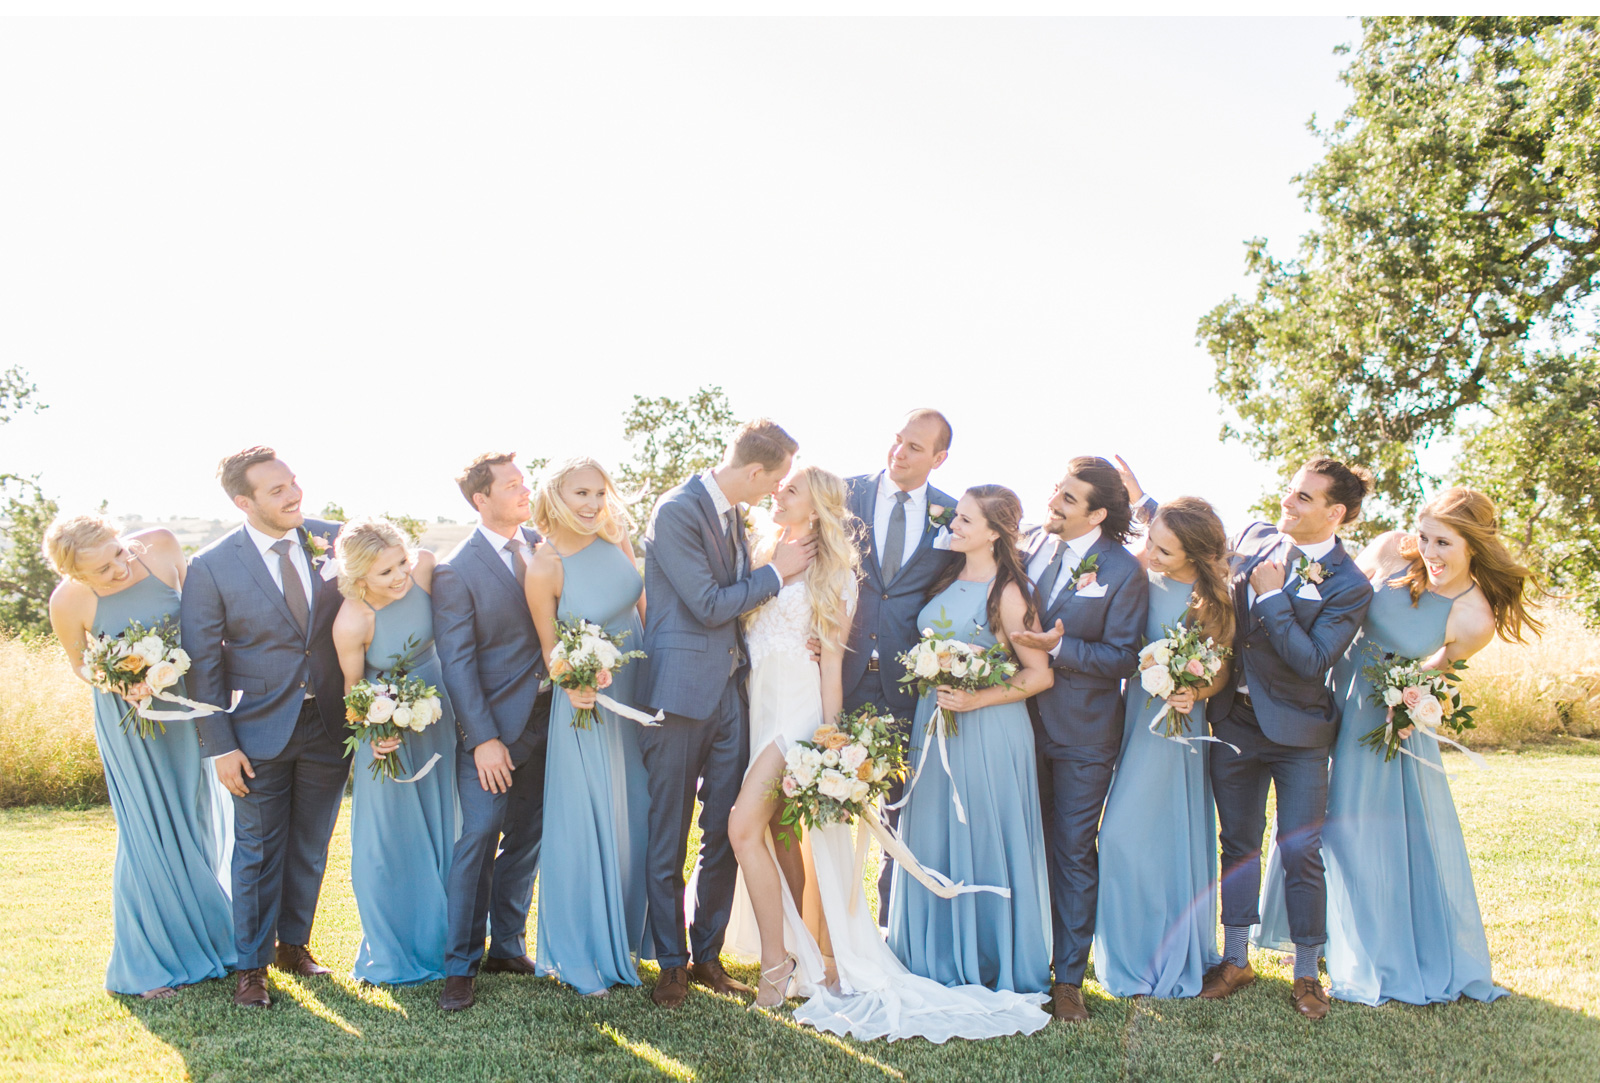 Paso-Robles-Style-Me-Pretty-The-Knot-Wedding-Natalie-Schutt-Photography's-Wedding_08.jpg